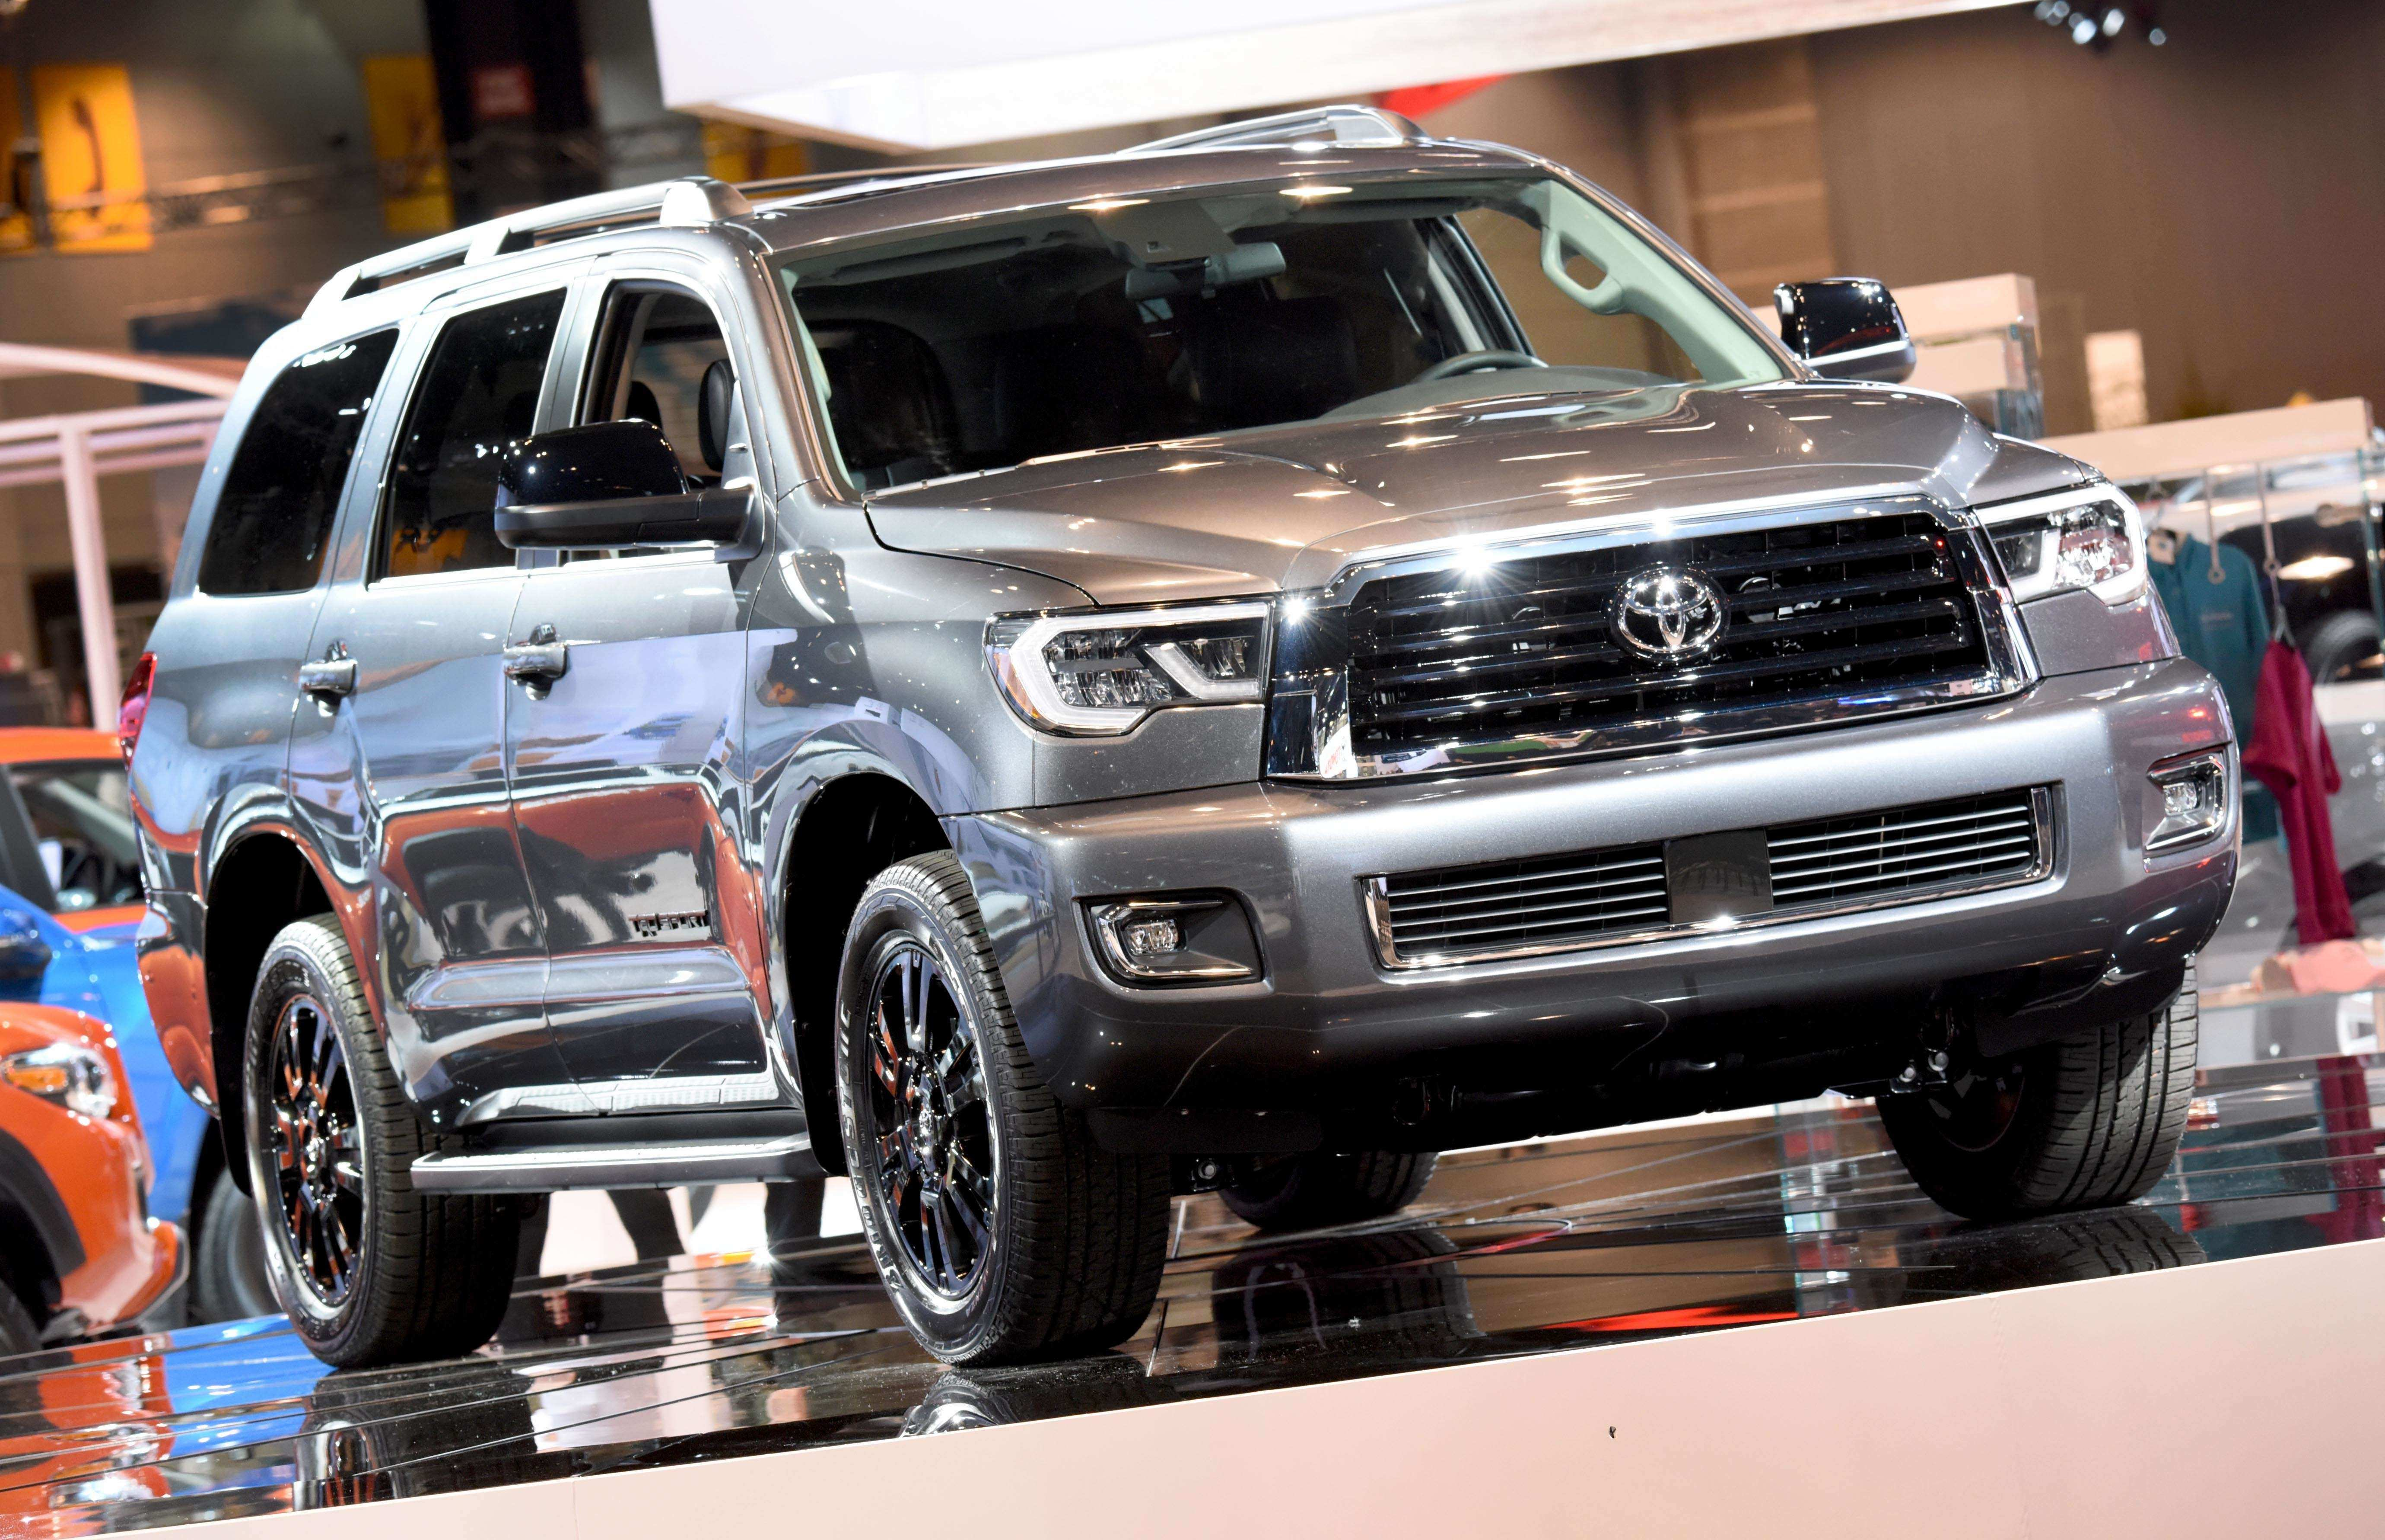 26 New 2019 Toyota Sequoia Redesign Specs and Review by 2019 Toyota Sequoia Redesign